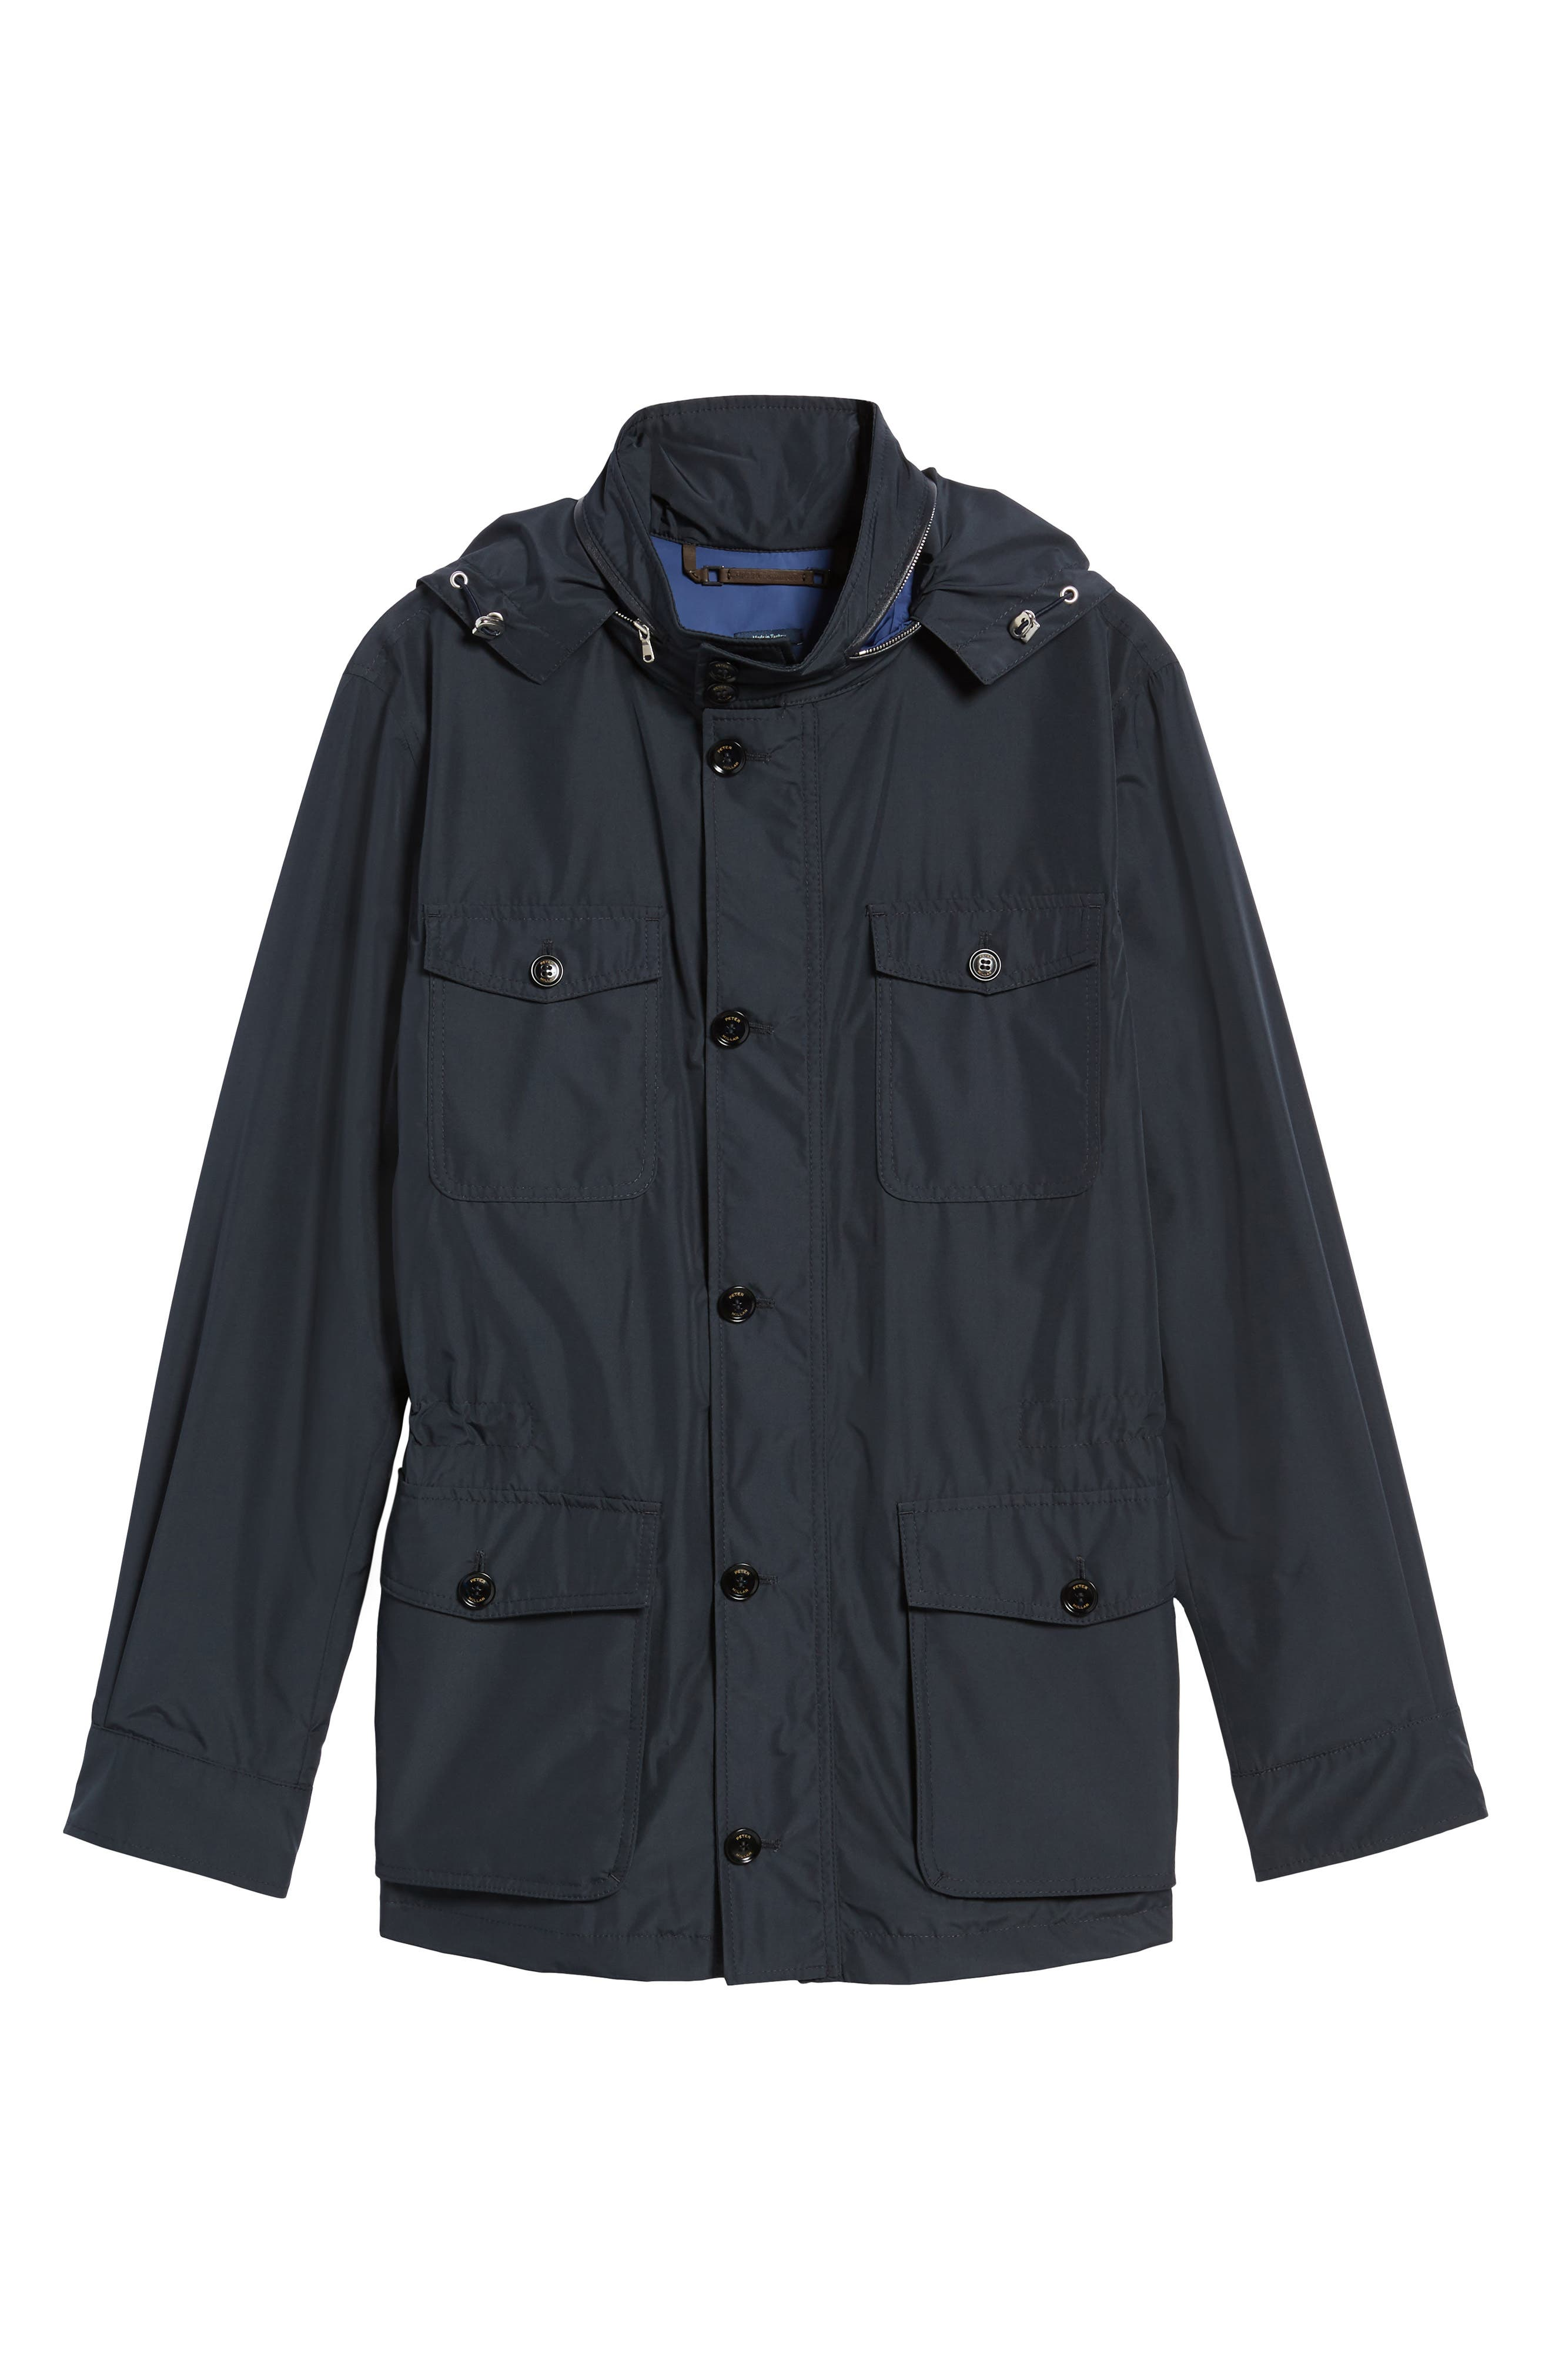 Peter Millar All Weather Discovery Jacket,                             Alternate thumbnail 10, color,